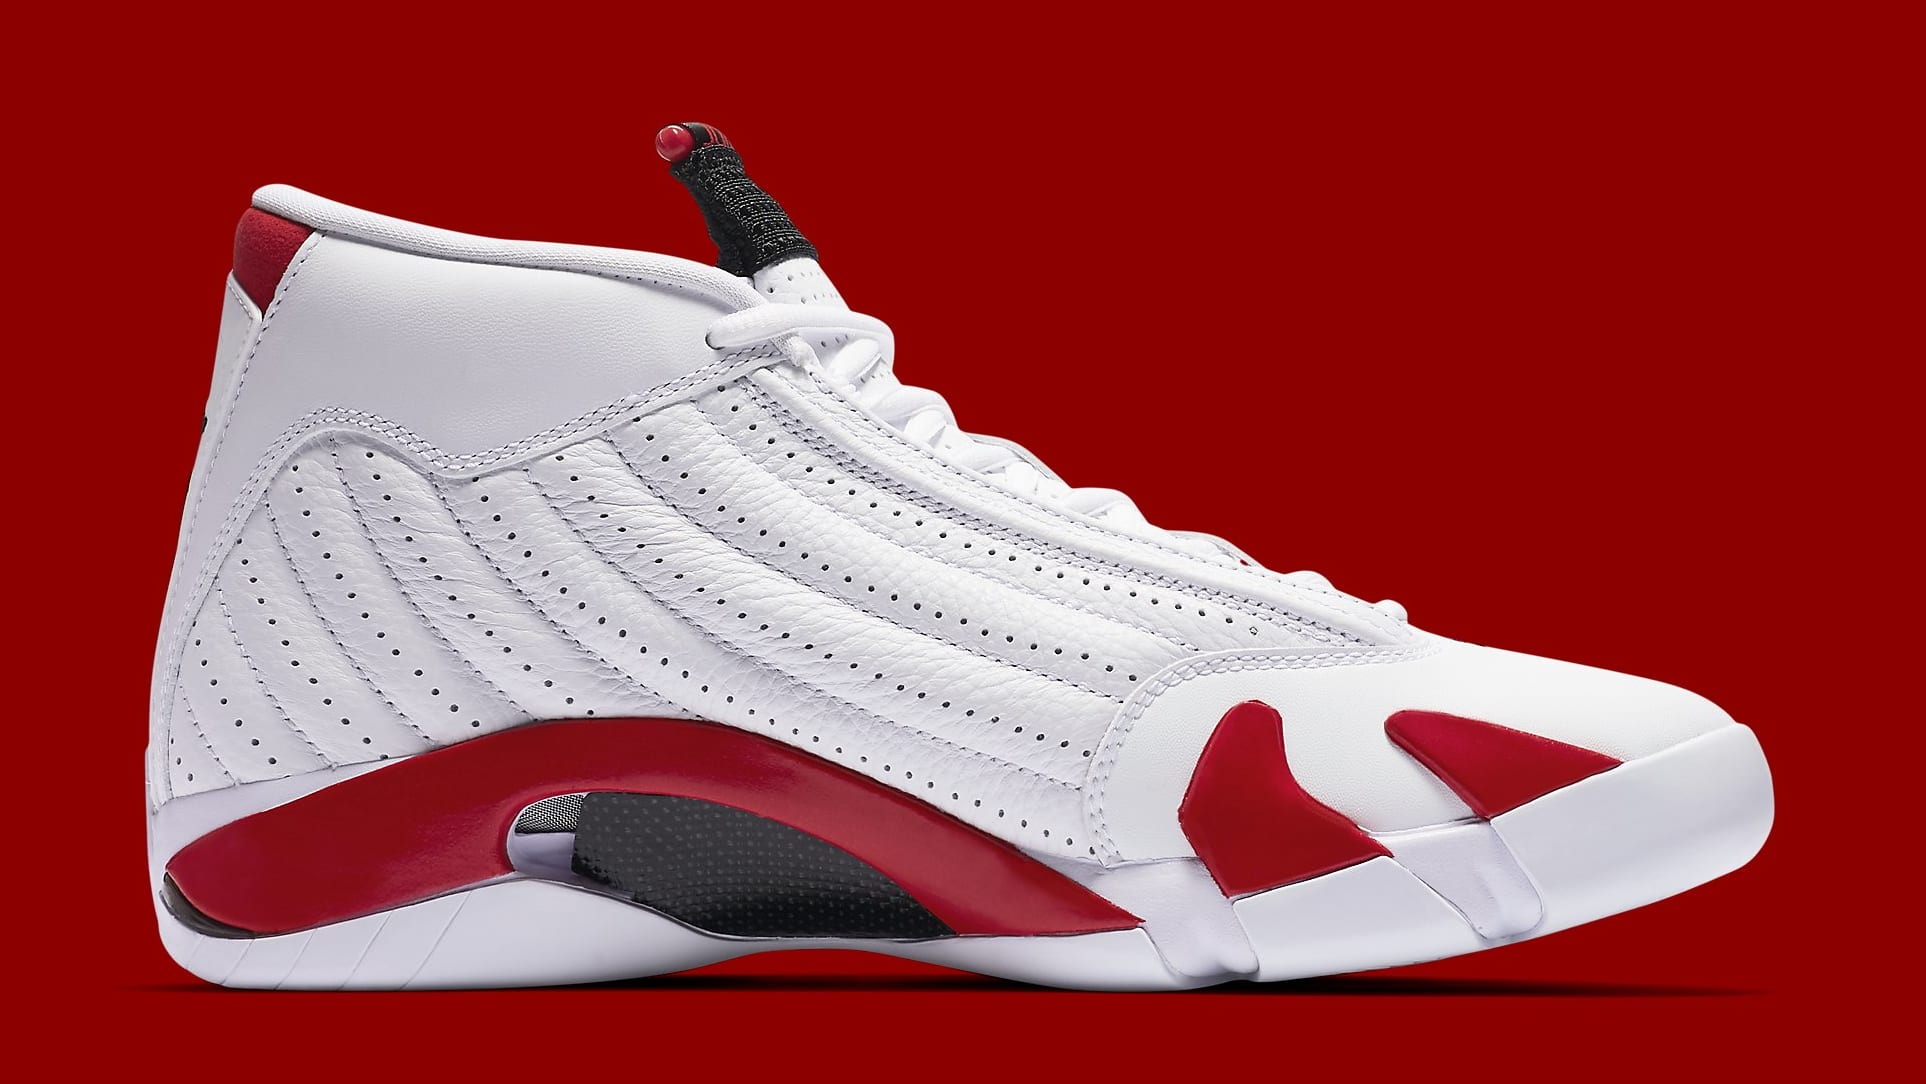 buy online 81fe7 2f692 Image via Nike Air Jordan 14 Retro  Candy Cane 2019  487471-100 Medial